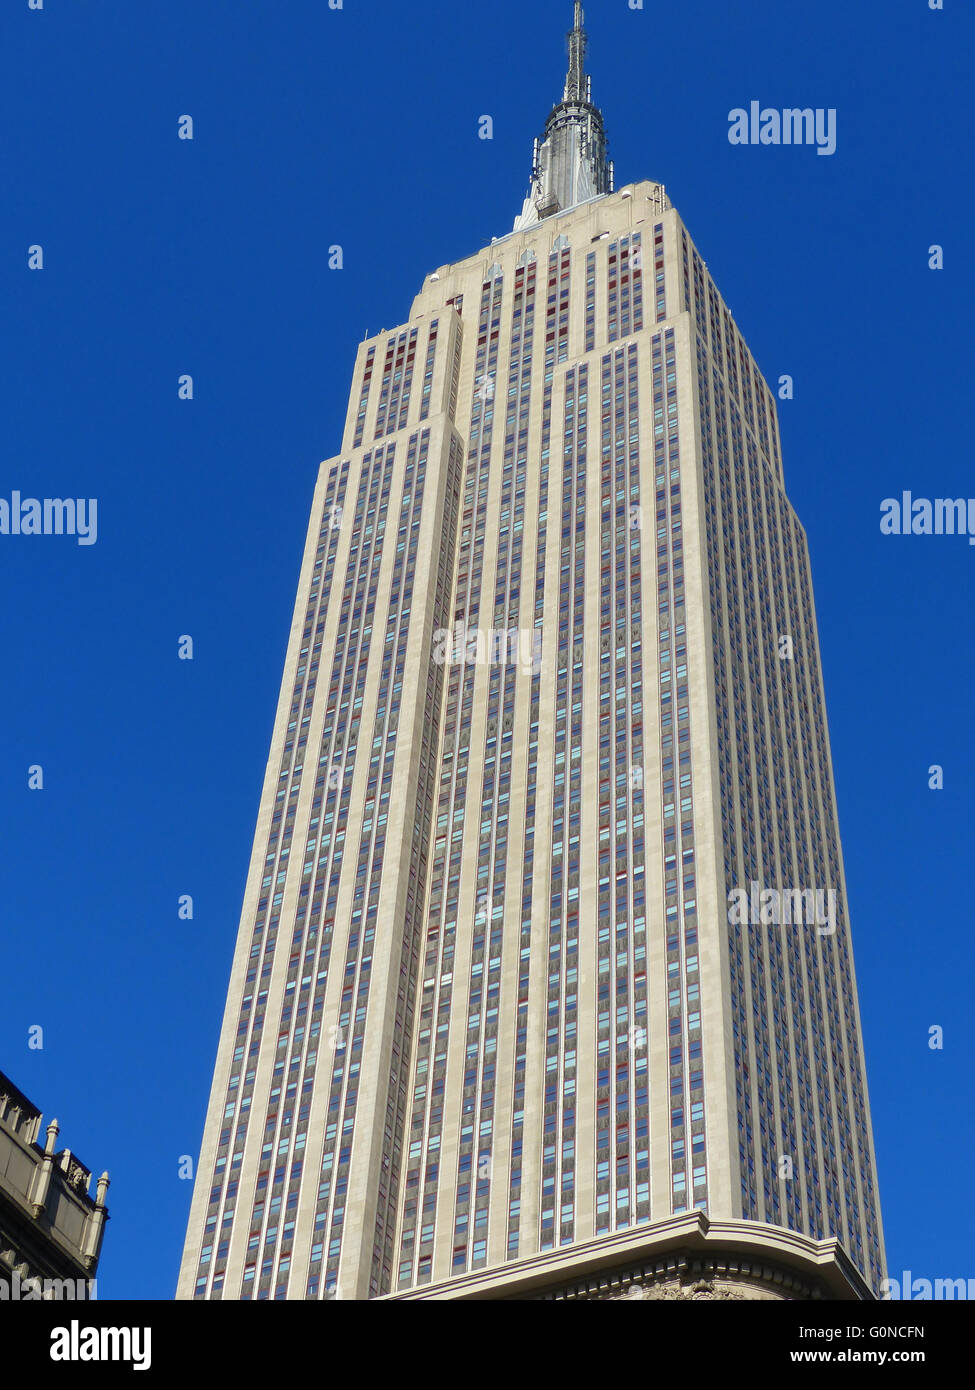 new york city empire state building completed in 1931 in art deco